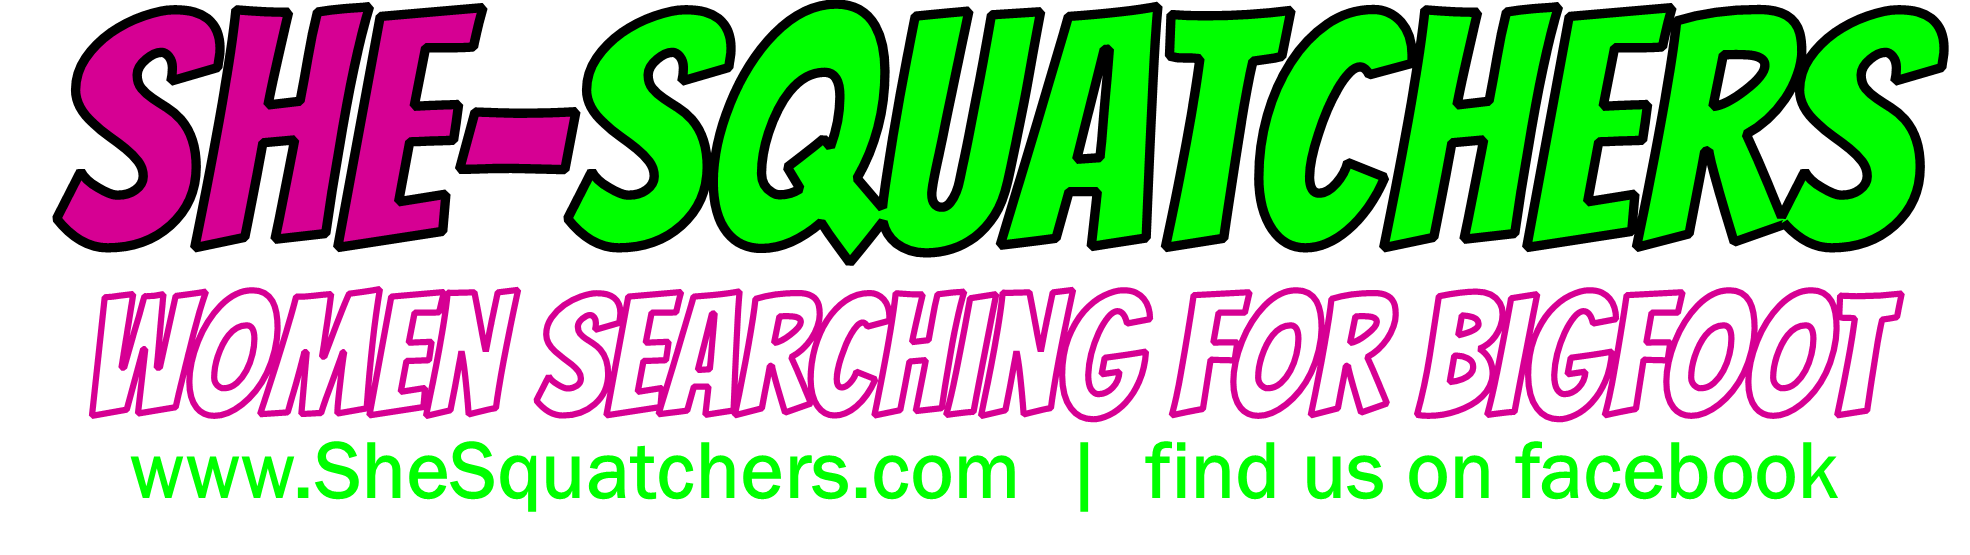 She-Squatchers - first all female bigfoot research team in midwest - SheSquatchers.com